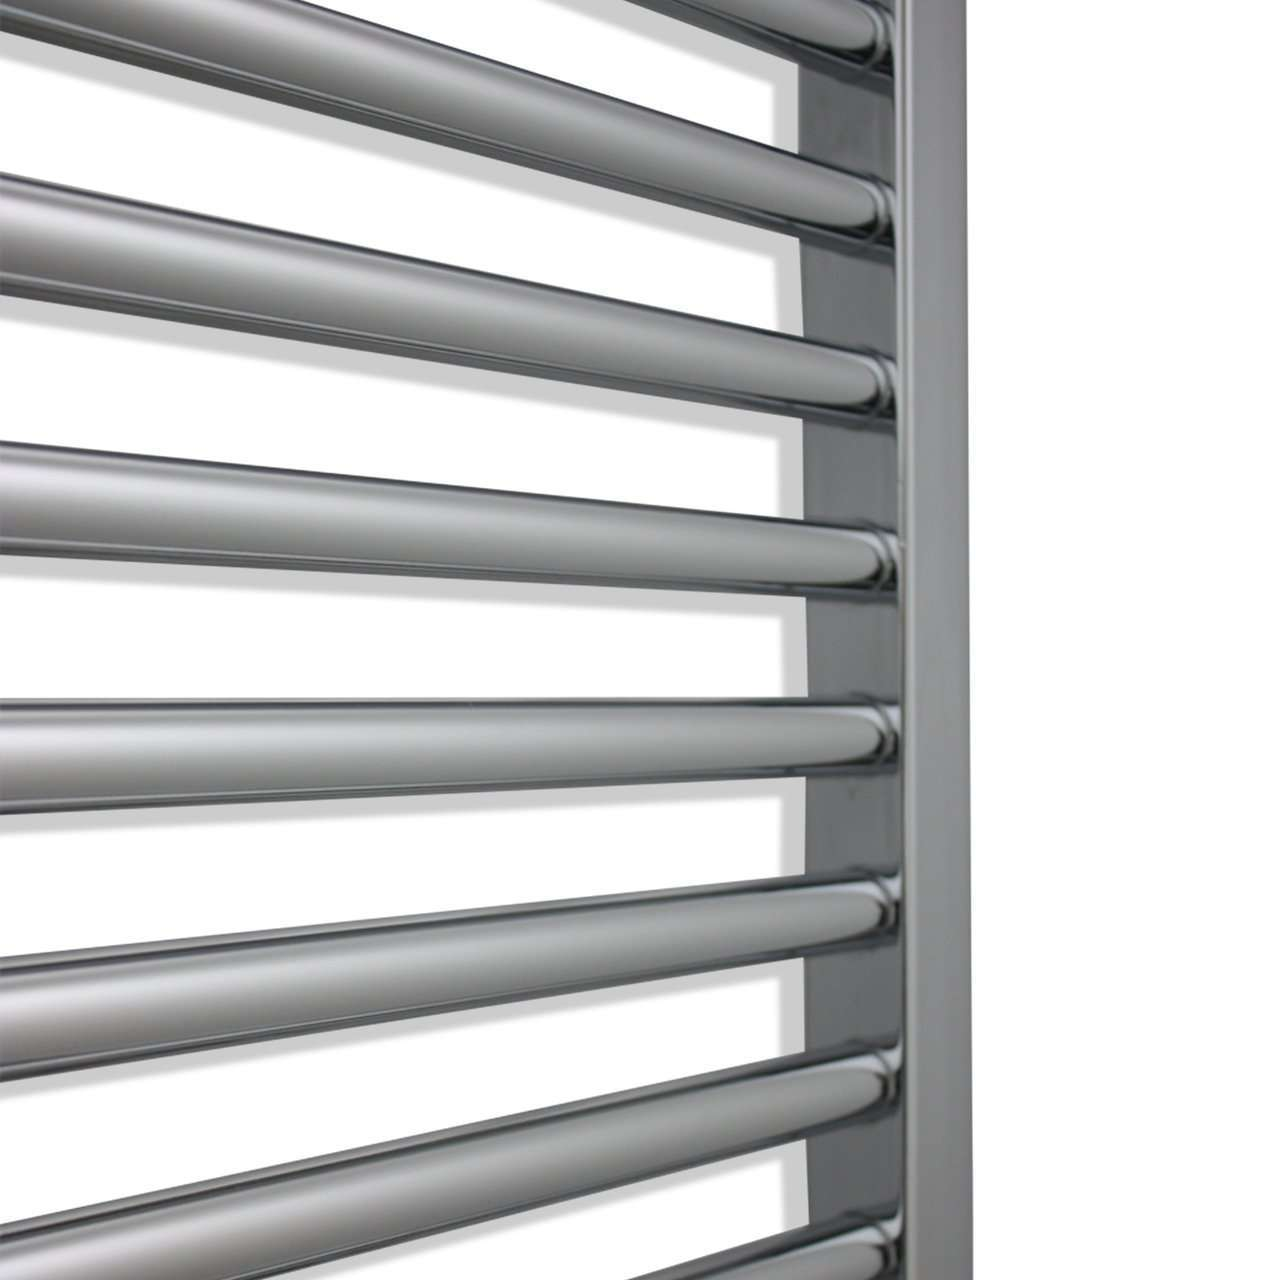 450mm Wide 1500mm High Curved Chrome Heated Towel Rail Radiator HTR